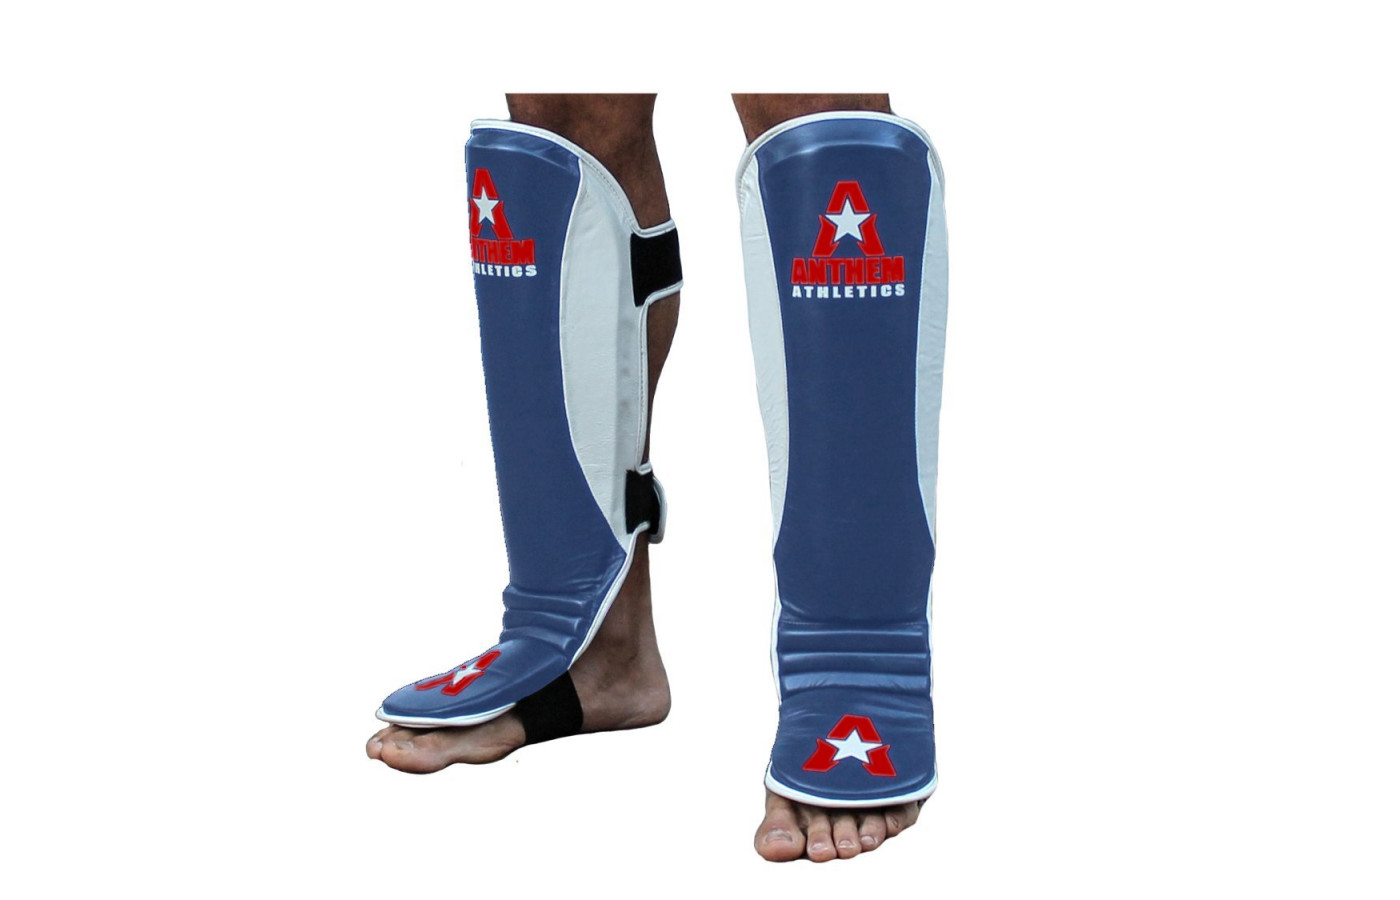 anthem athletics fortitude shin guards red white and blue